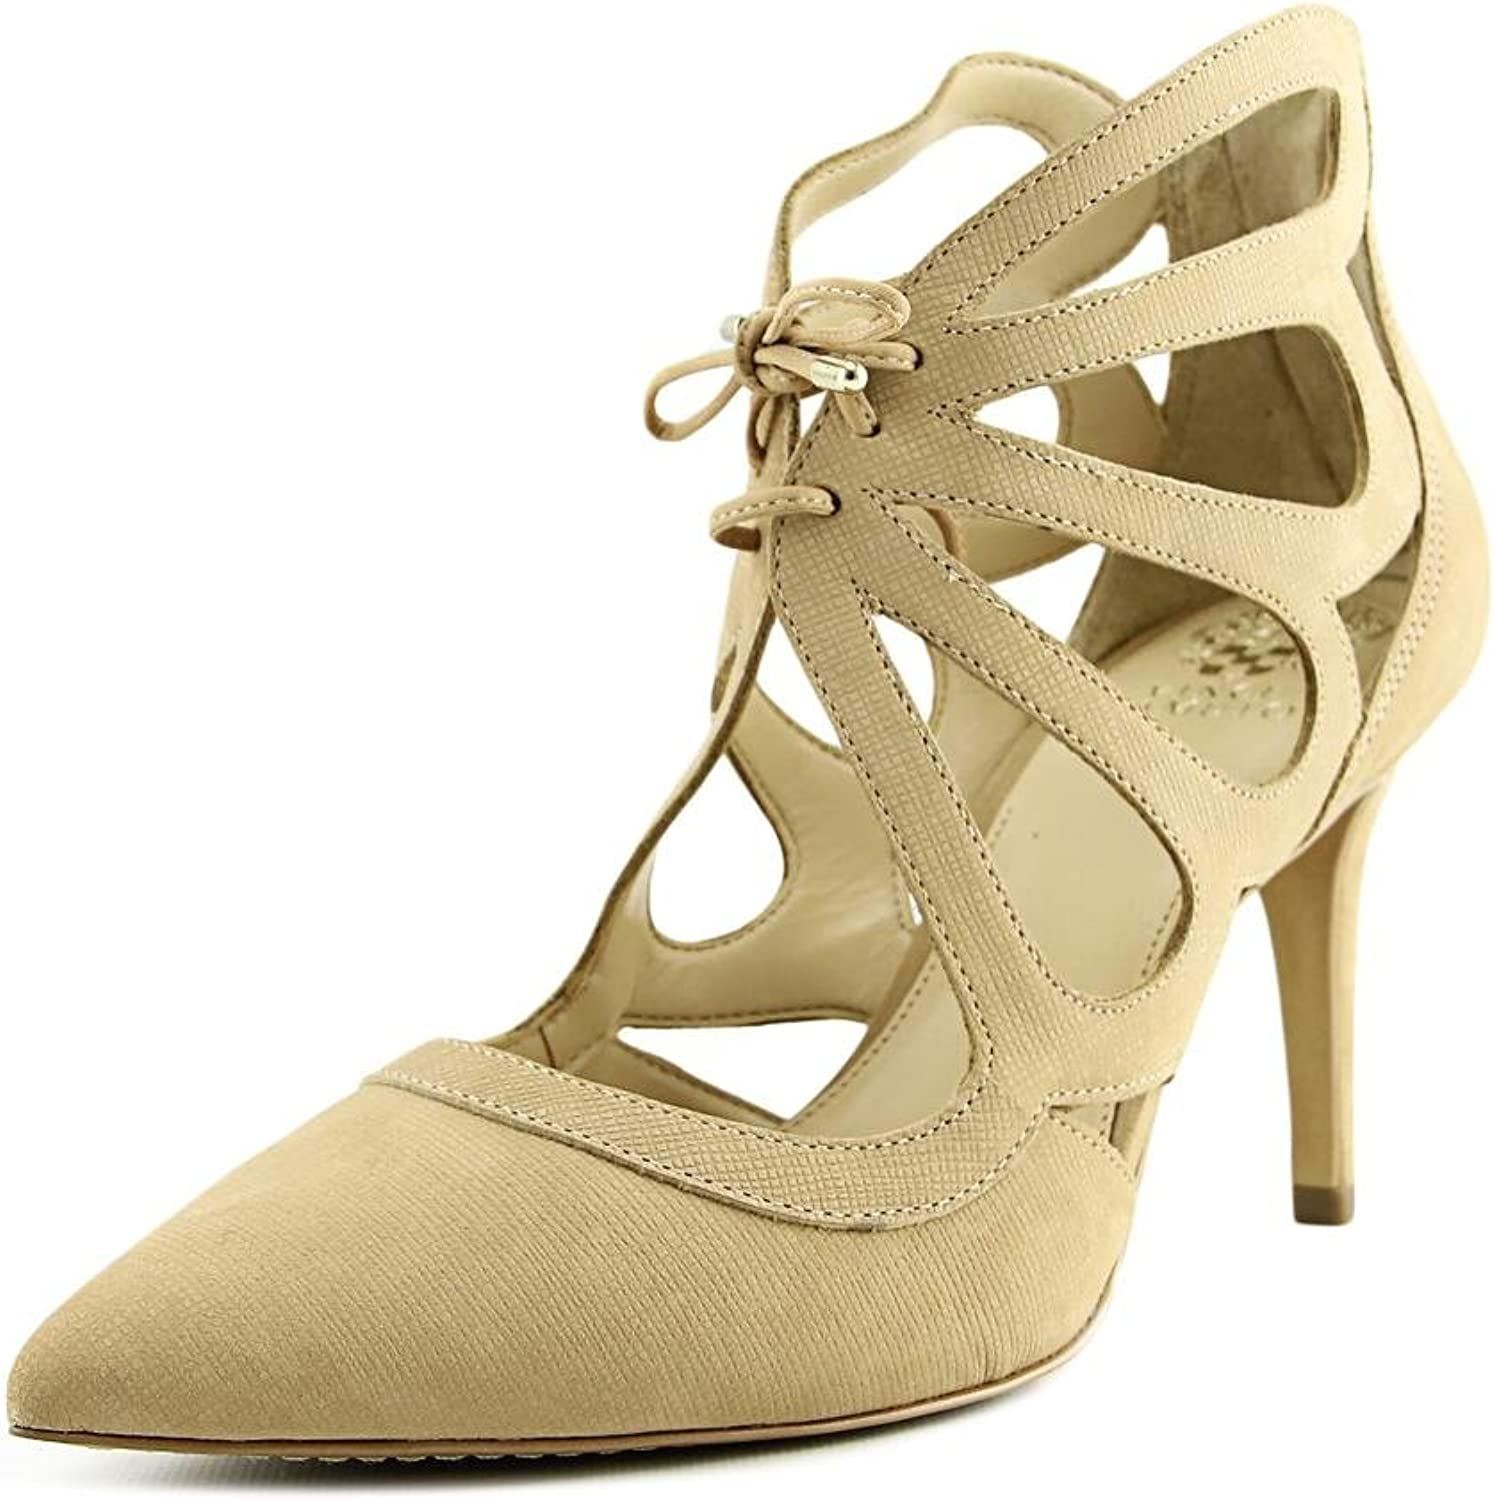 Vince Camuto Womens Ballana Leather Pointed Toe Casual Strappy Sandals